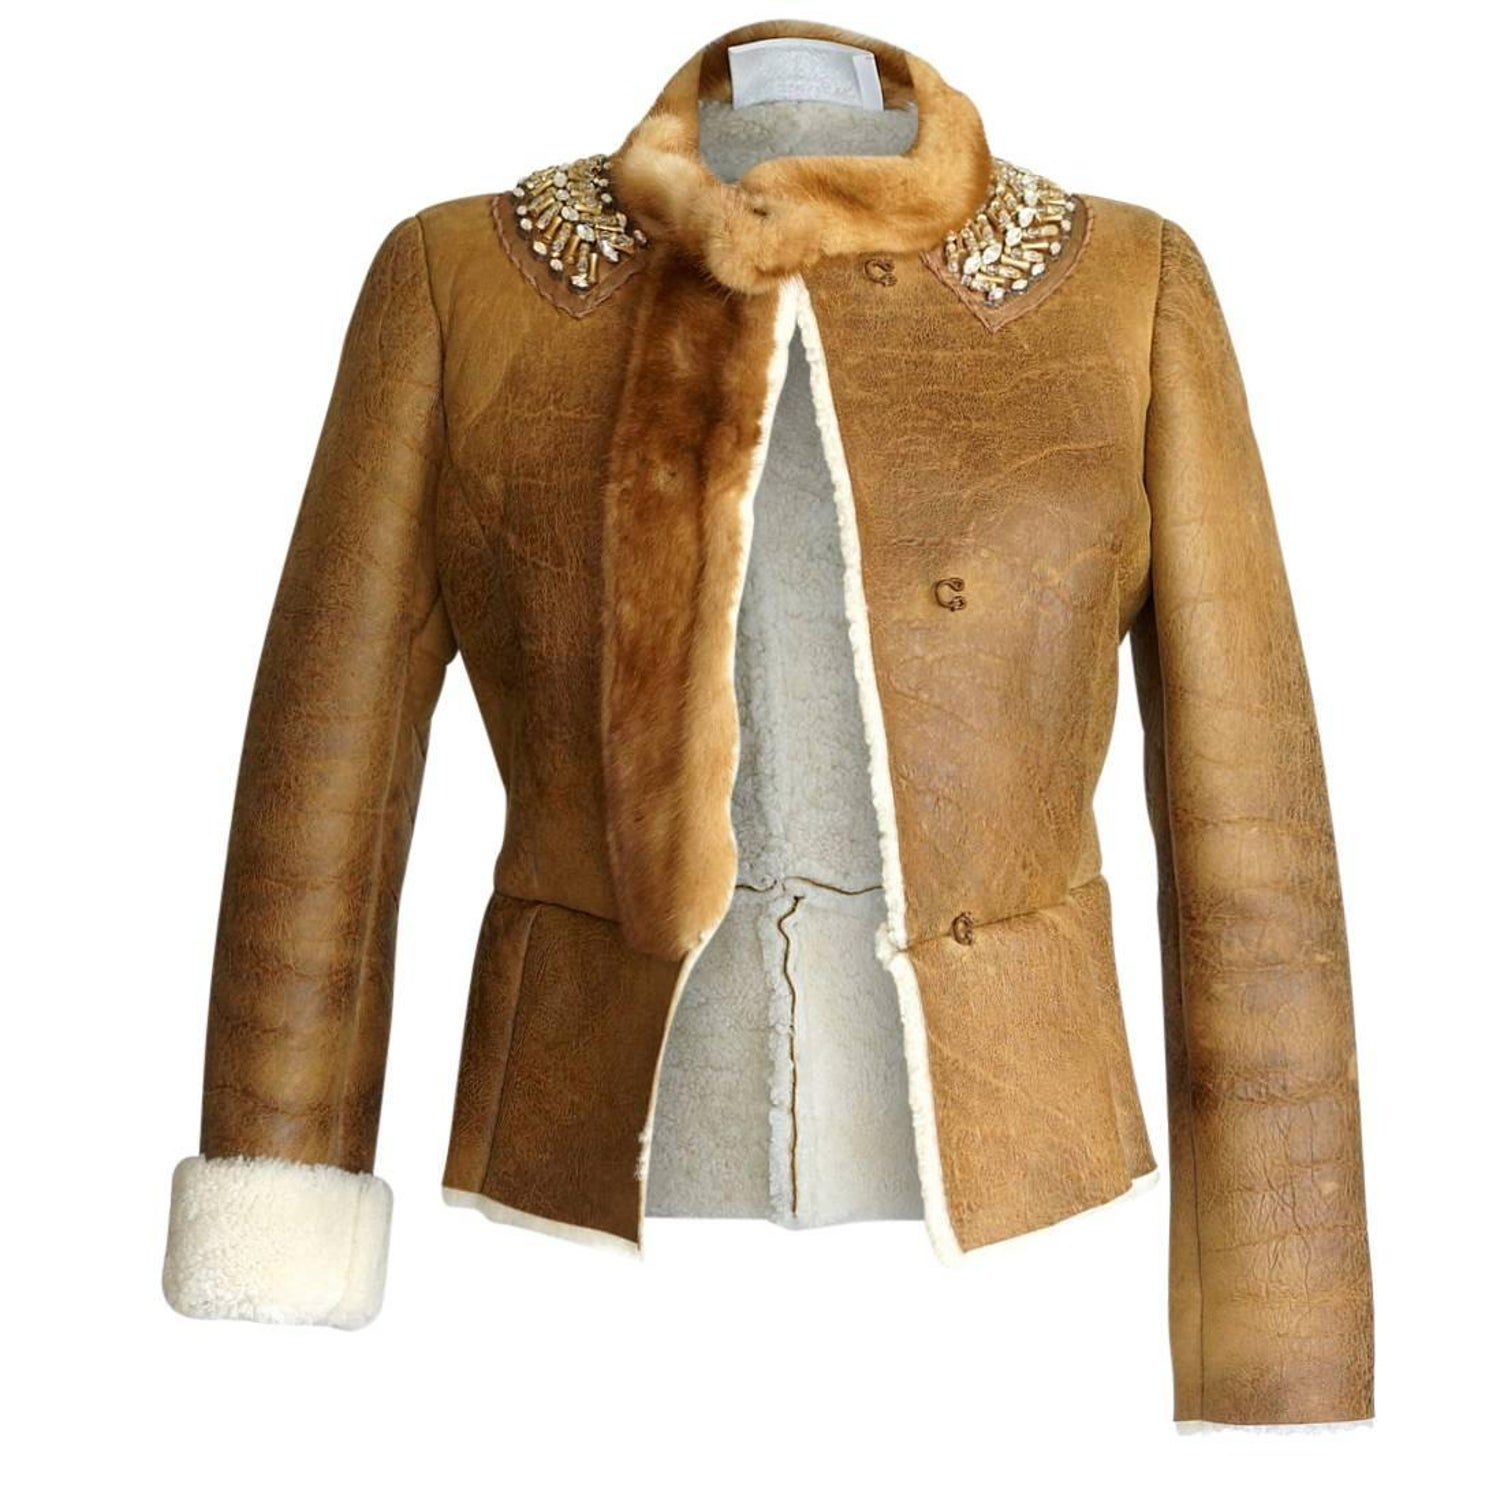 f3a9942f8 Prada Jacket Distressed Shearling Mink Trim and Jeweled Collar 40 / 6 For  Sale at 1stdibs